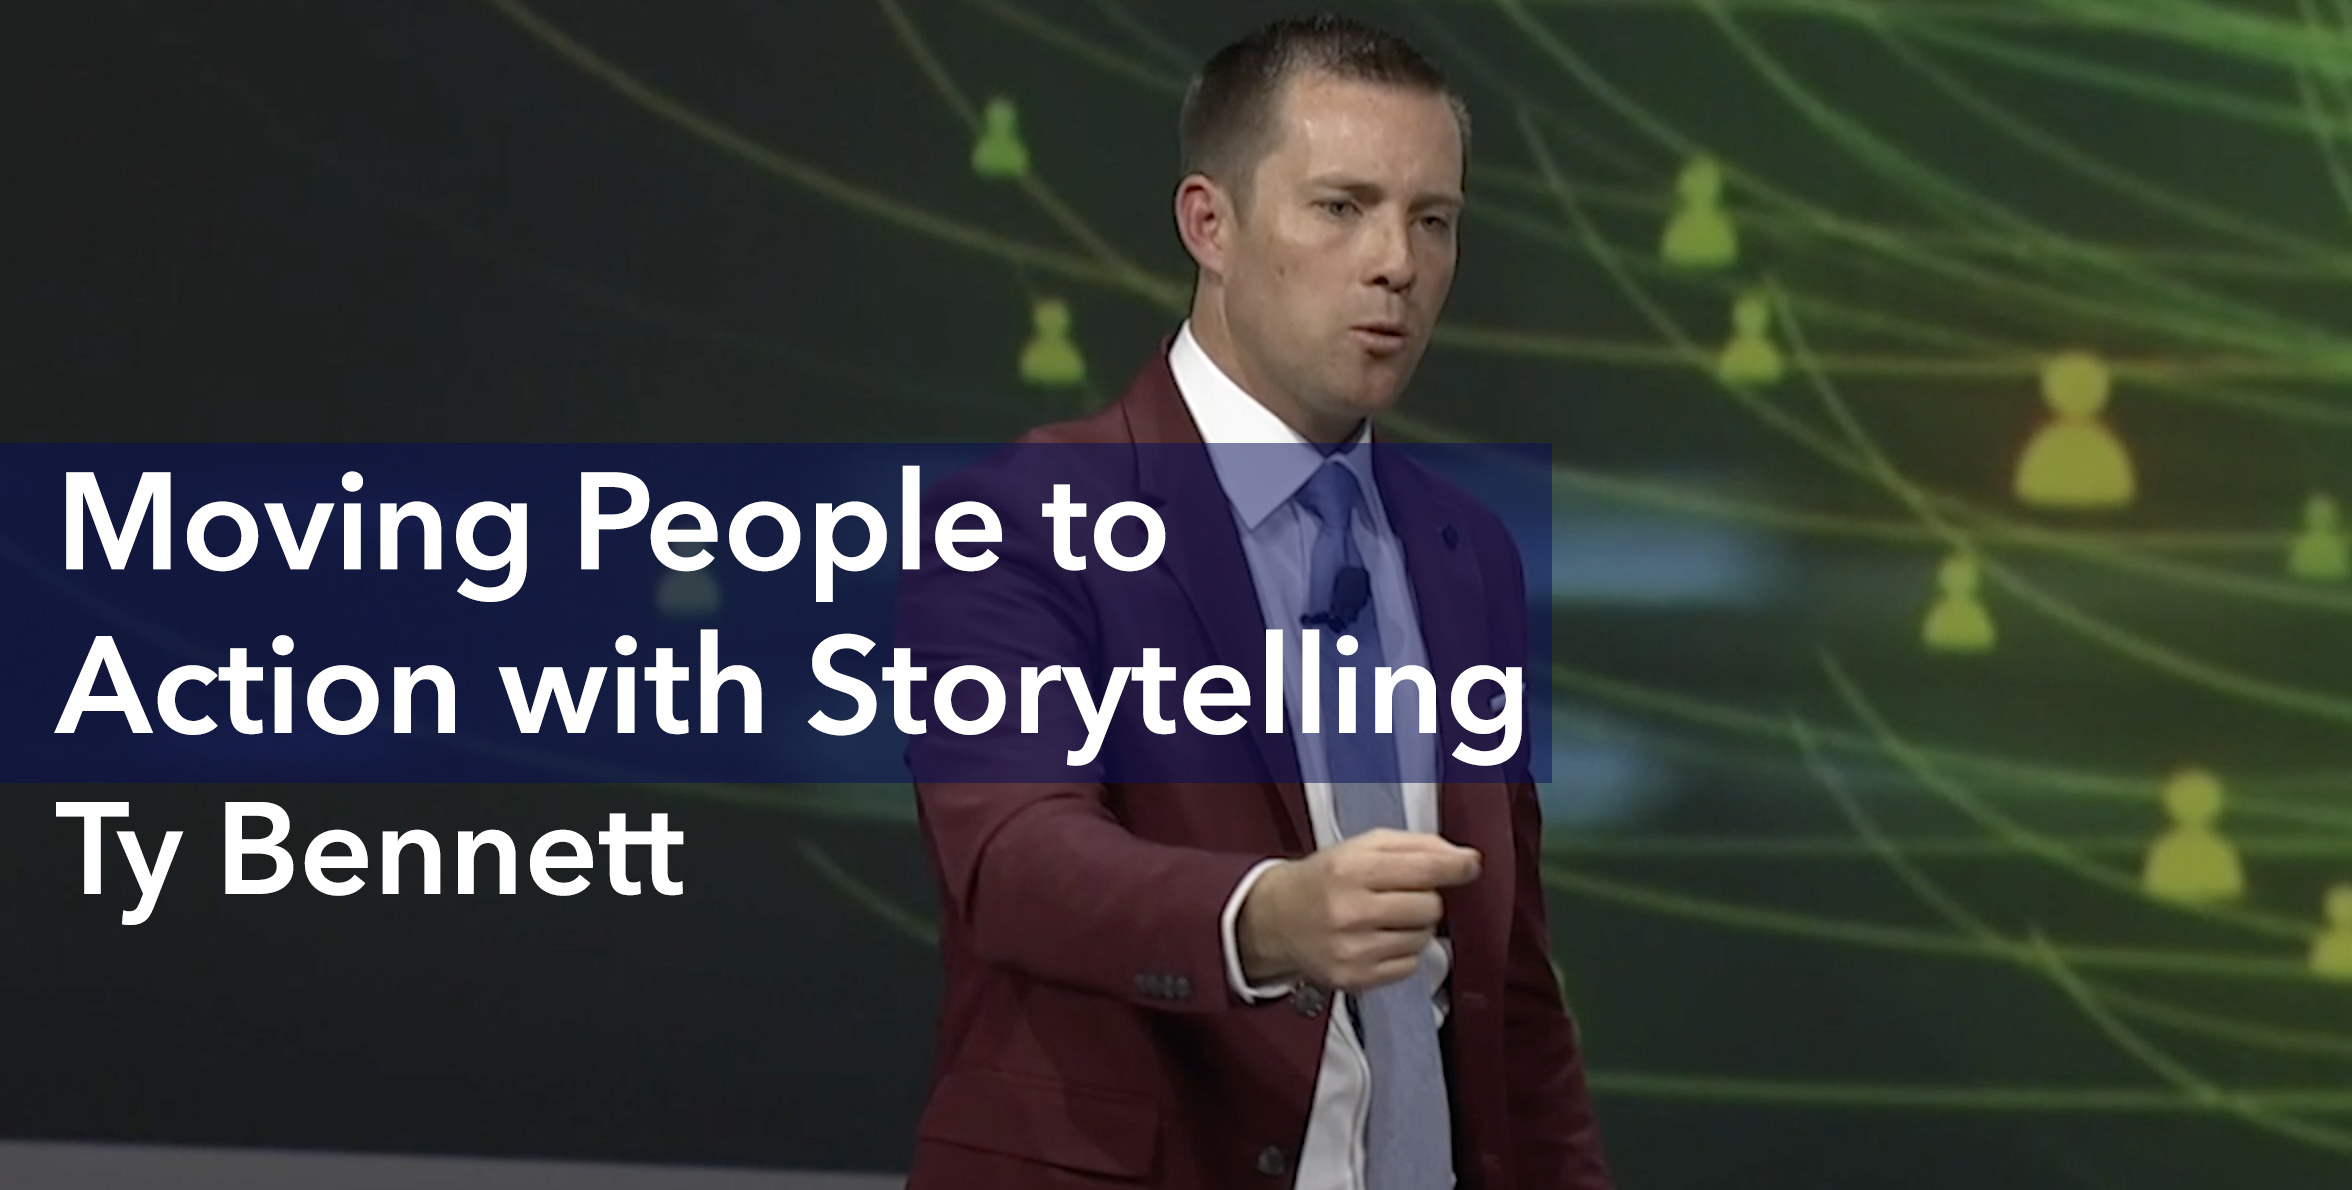 Ty-Storytelling is moving people to action